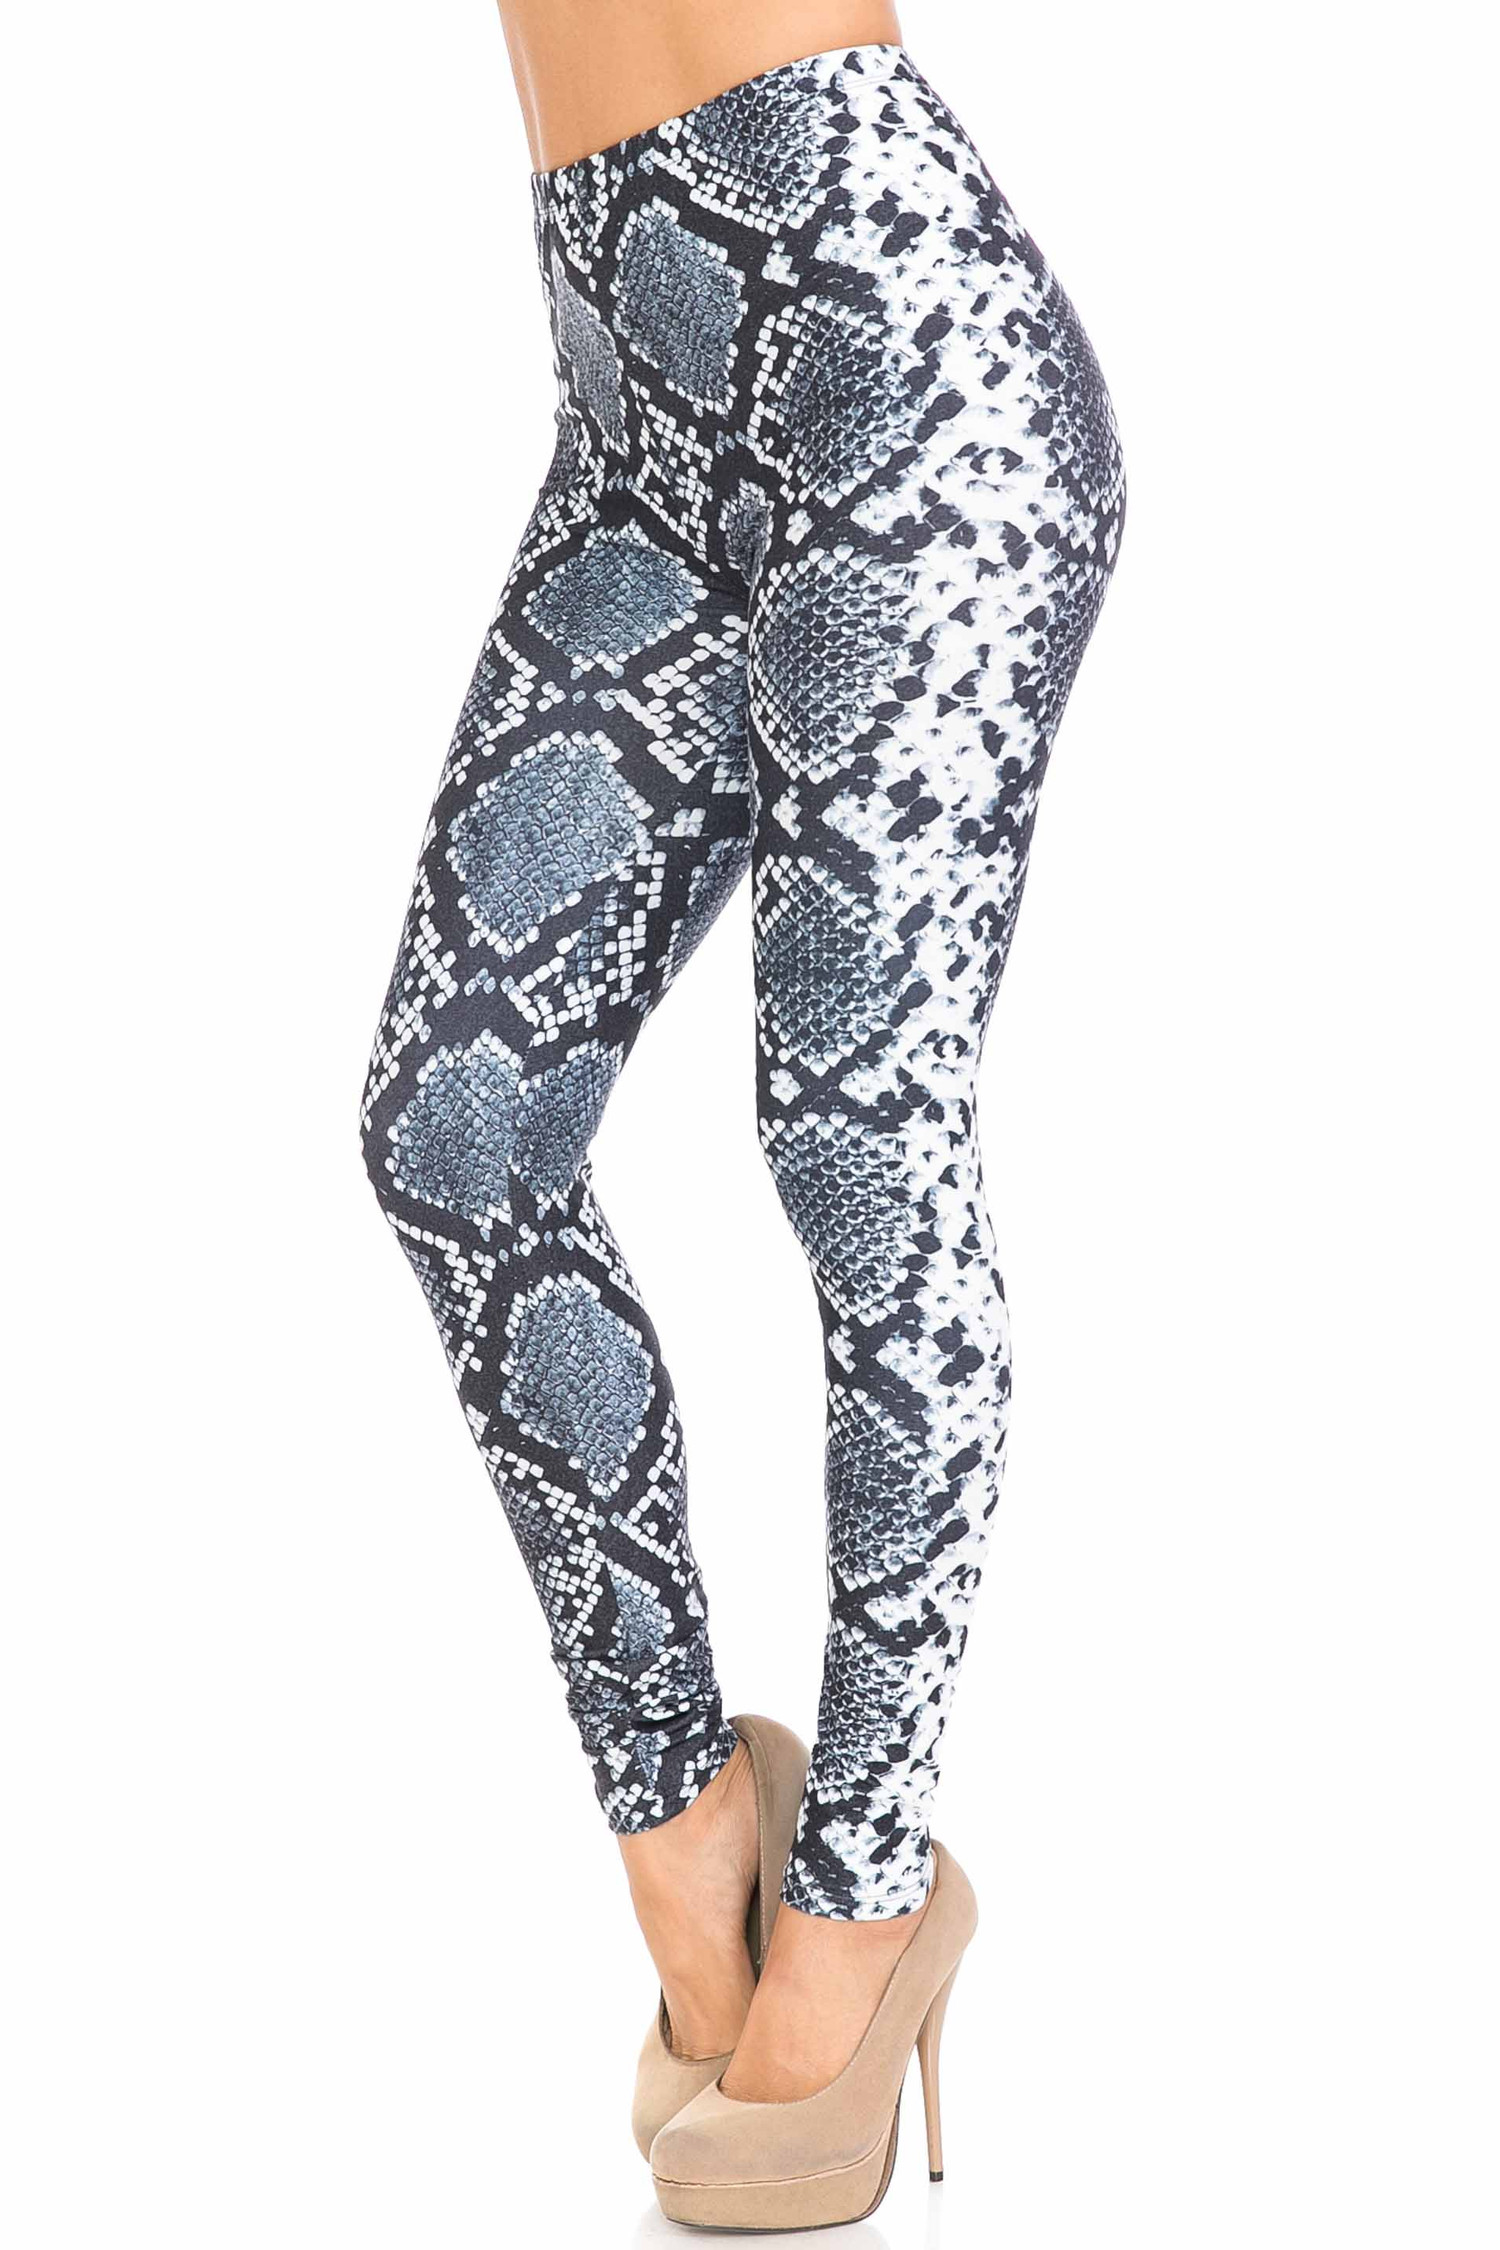 45 degree view of Creamy Soft Steel Blue Boa Plus Size Leggings - USA Fashion™ with a cool edgy snakeskin look.